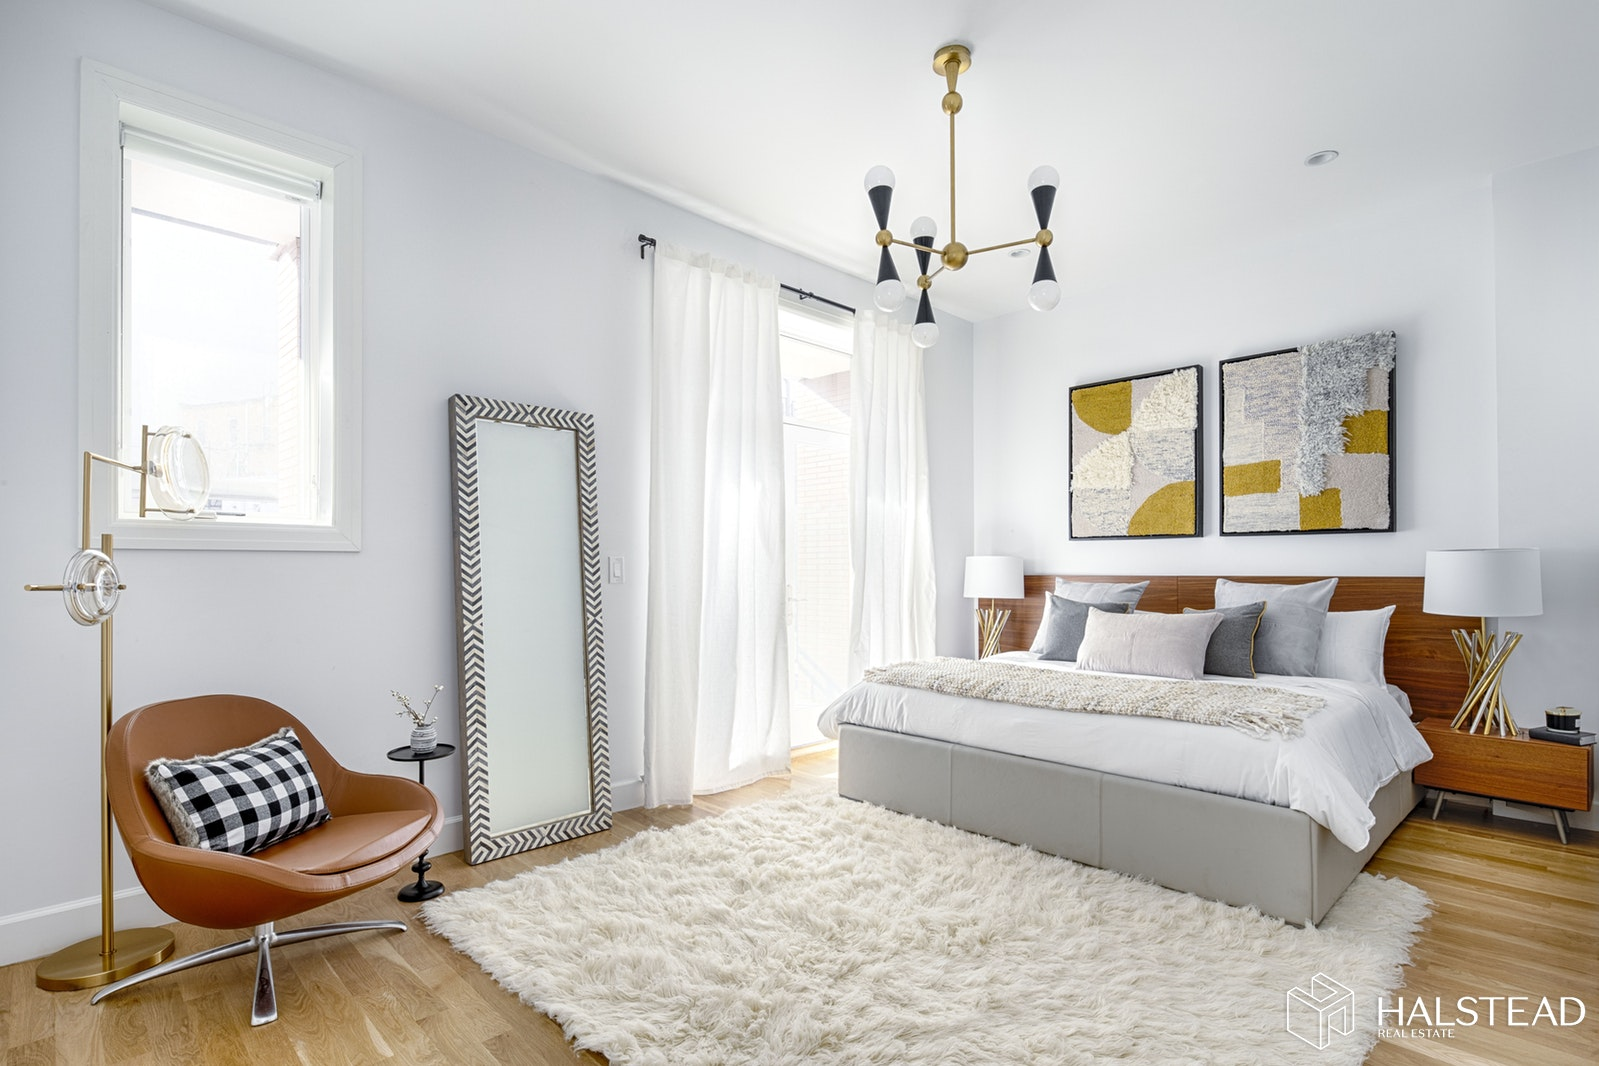 755 Bergen St 1, Crown Heights, Brooklyn, NY, 11238, $1,495,000, Property For Sale, Halstead Real Estate, Photo 1